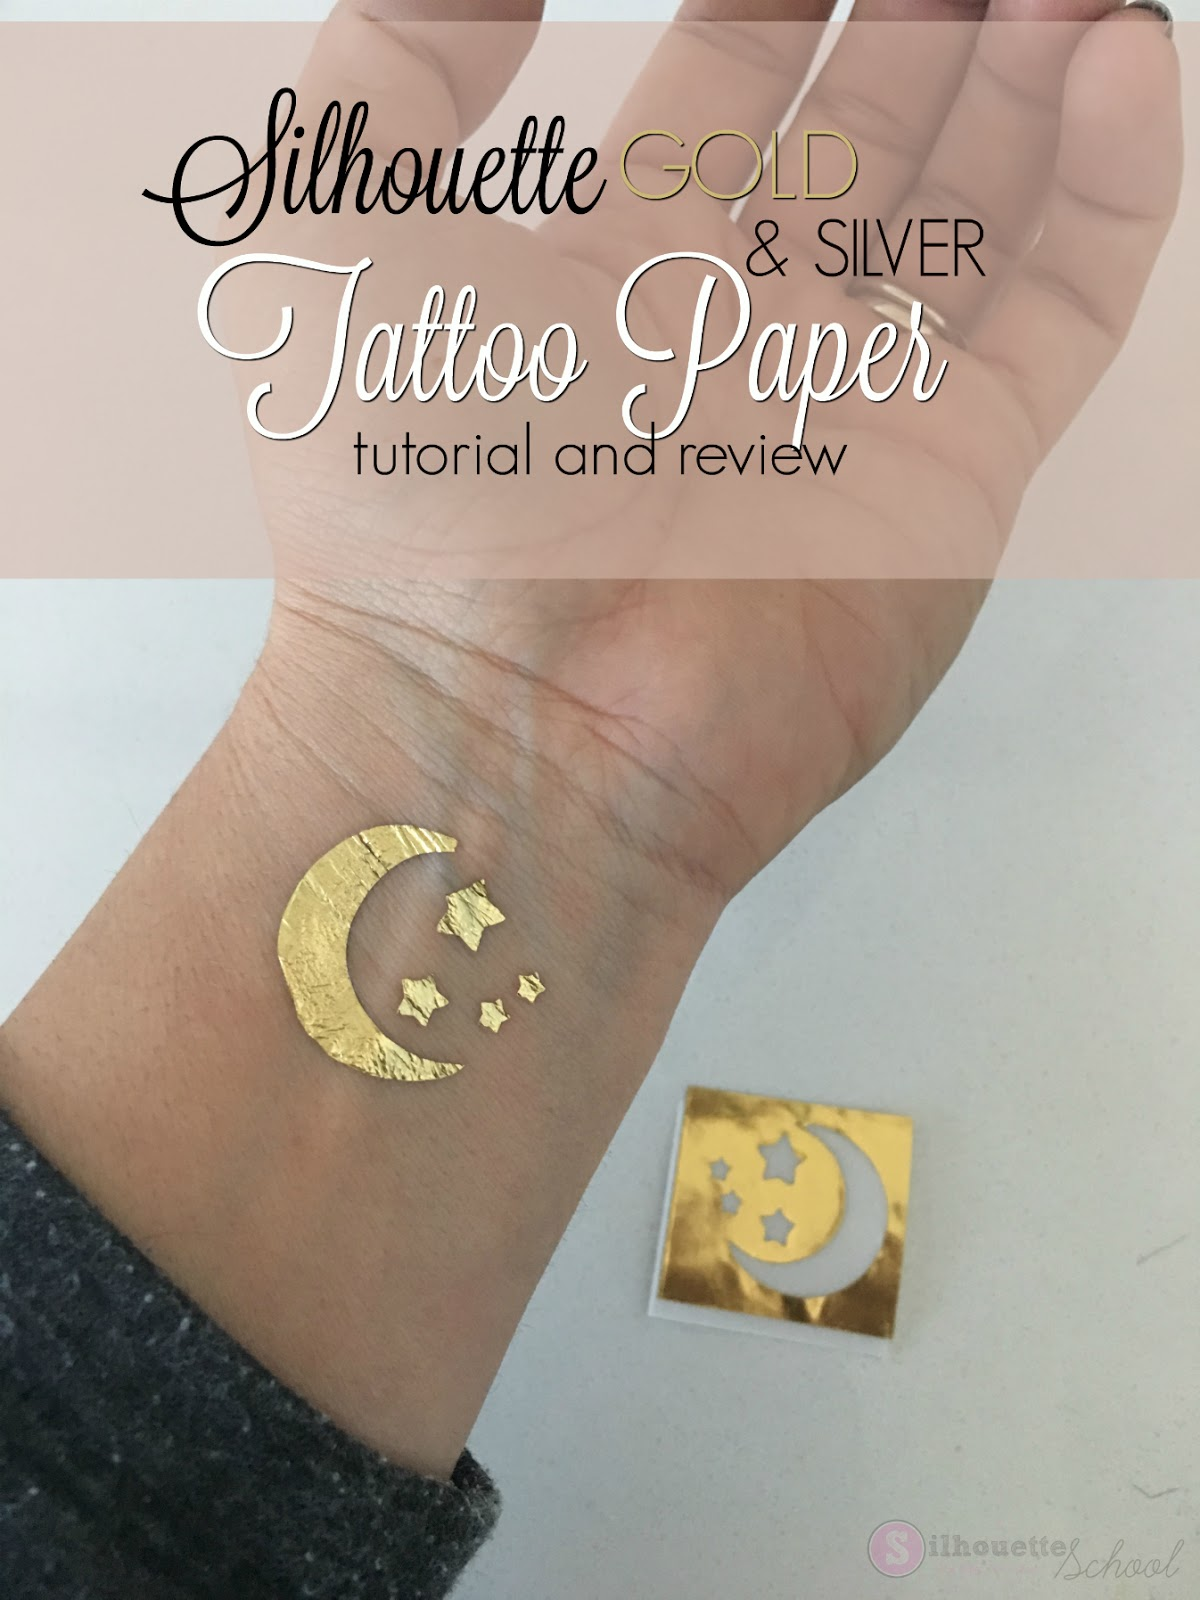 Temporary Tattoos That Last A Long Time: Silhouette Gold And Silver Tattoo Paper: Tutorial And